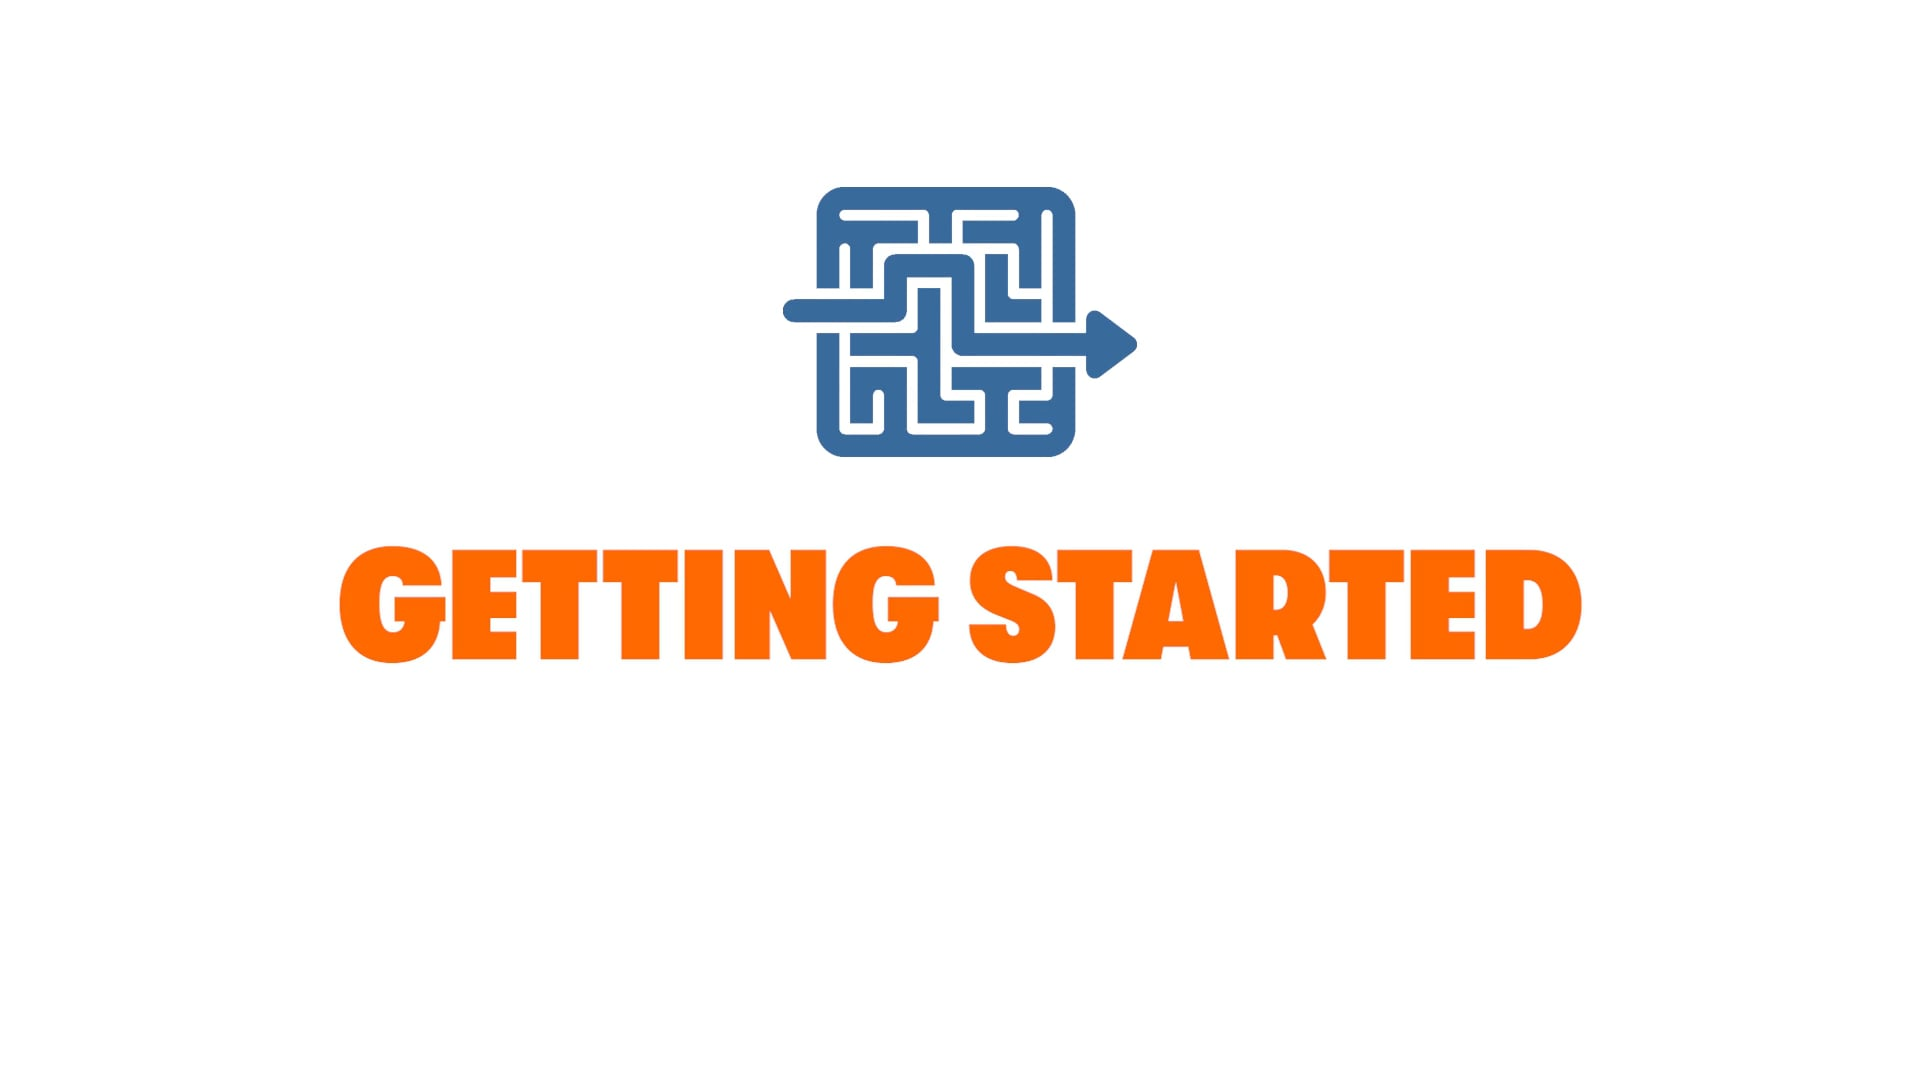 Get in the Game: Getting Started